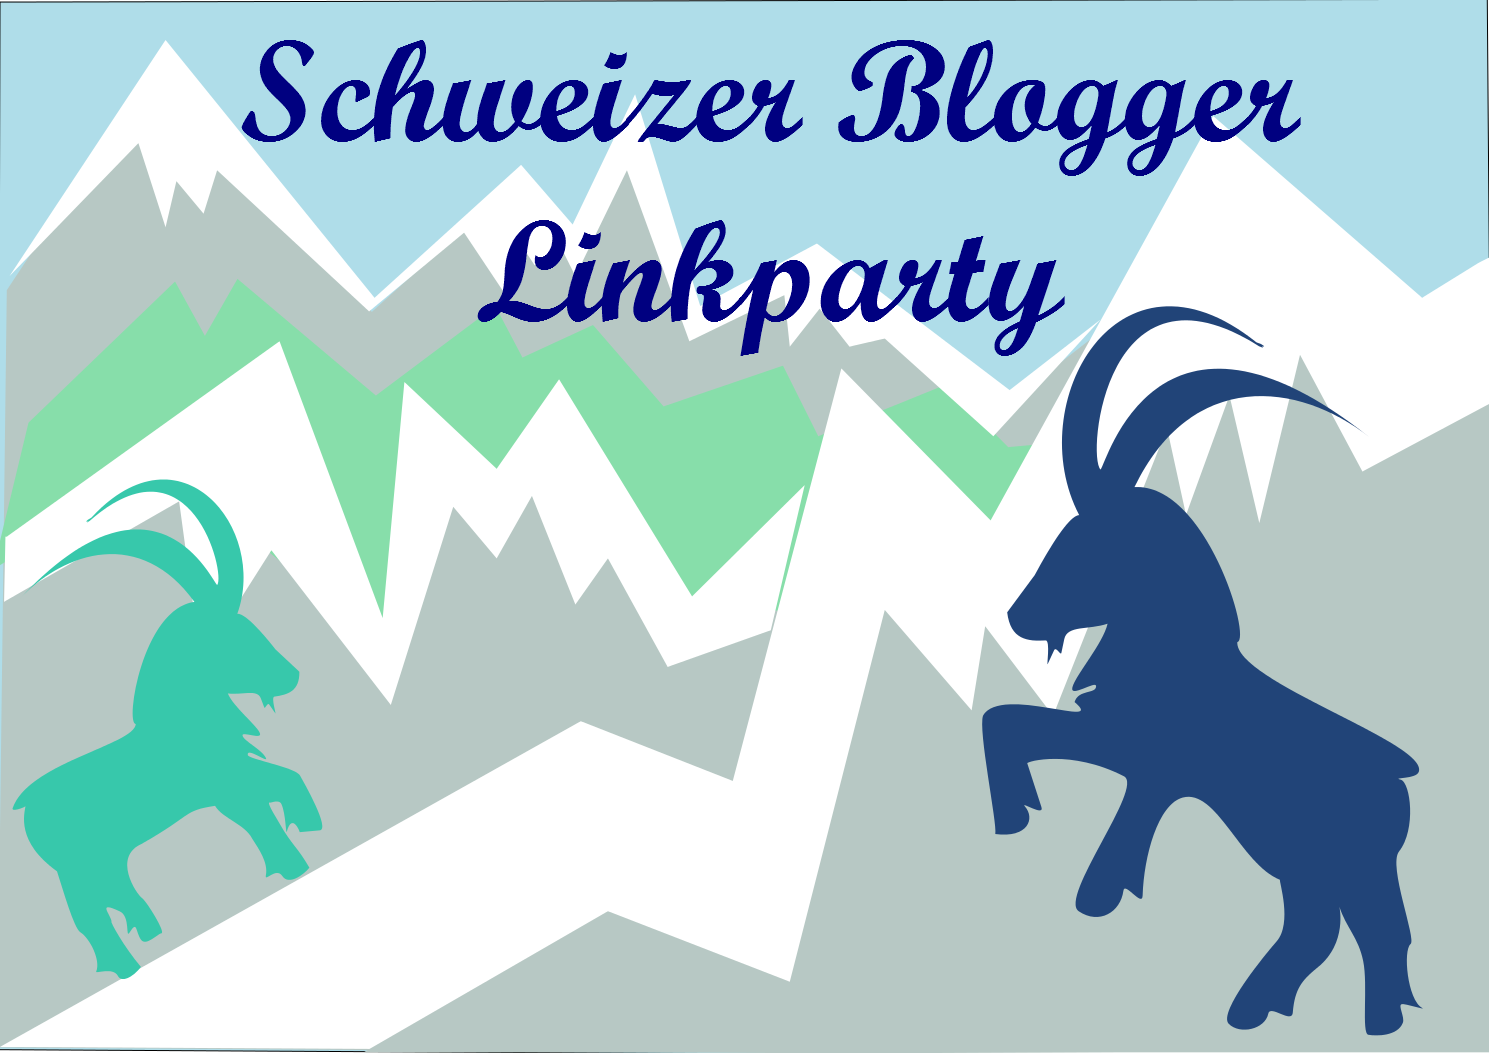 Schweizer Blogger Linkparty